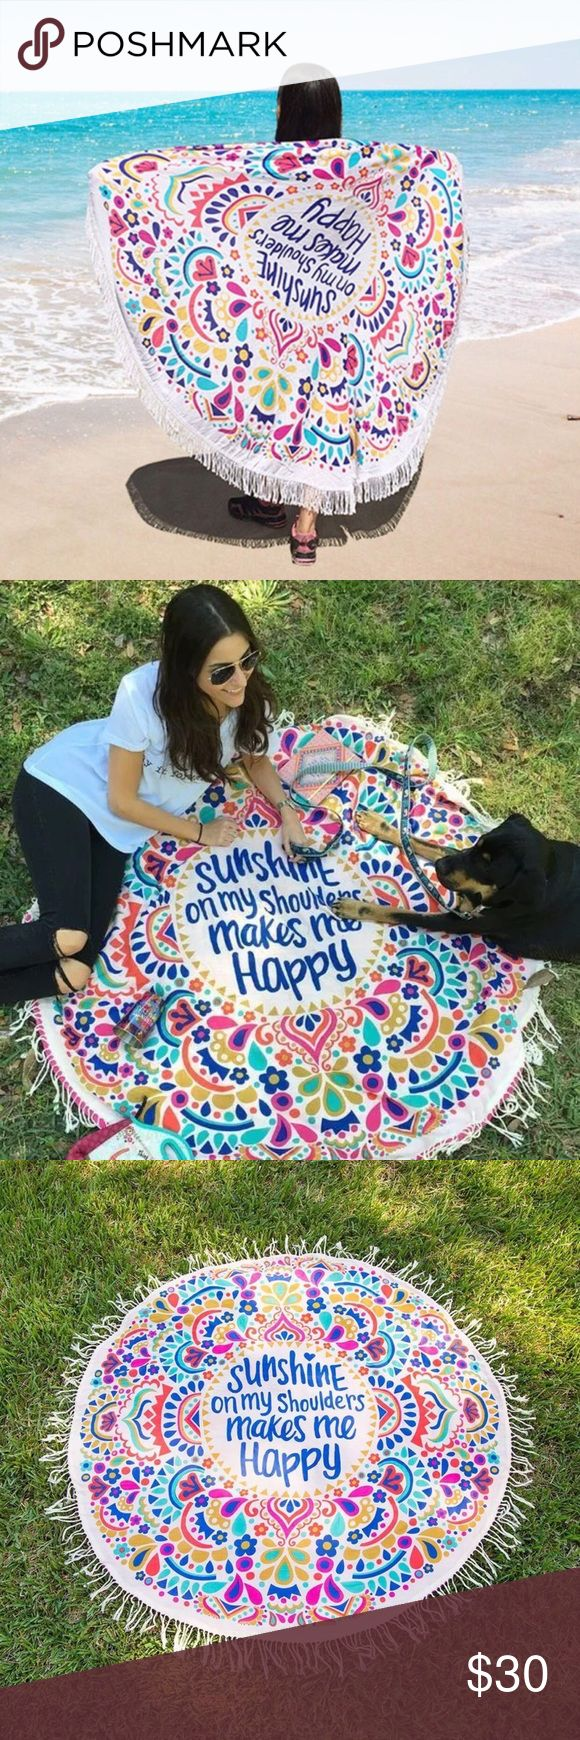 """ROUND BEACH TOWEL/THROW, SUNSHINE ON MY SHOULDERS ☀️""""SUNSHINE ON MY SHOULDERS MAKES ME HAPPY""""; COTTON BEACH THROW, YOGA MAT, SARONG, SHAWL OR WALL TAPESTRY. ROUND TOWEL, FESTIVAL THROW, PICNIC BLANKET. SUPER VERSATILE. WRAP IT AROUND YOUR WAIST AS A SARONG, THROW IT OVER YOUR SHOULDERS FOR THE PERFECT SHAWL, OR LAY IT ON SAND FOR THE PERFECT BEACH TOWEL OR BEACH BLANKET. SIMILAR TO THOSE MADE BY VS PINK. LIGHTWEIGHT AND EASY TO THROW IN YOUR BAG. 100% COTTON WITH COTTON FRINGE. NOT MADE OF…"""